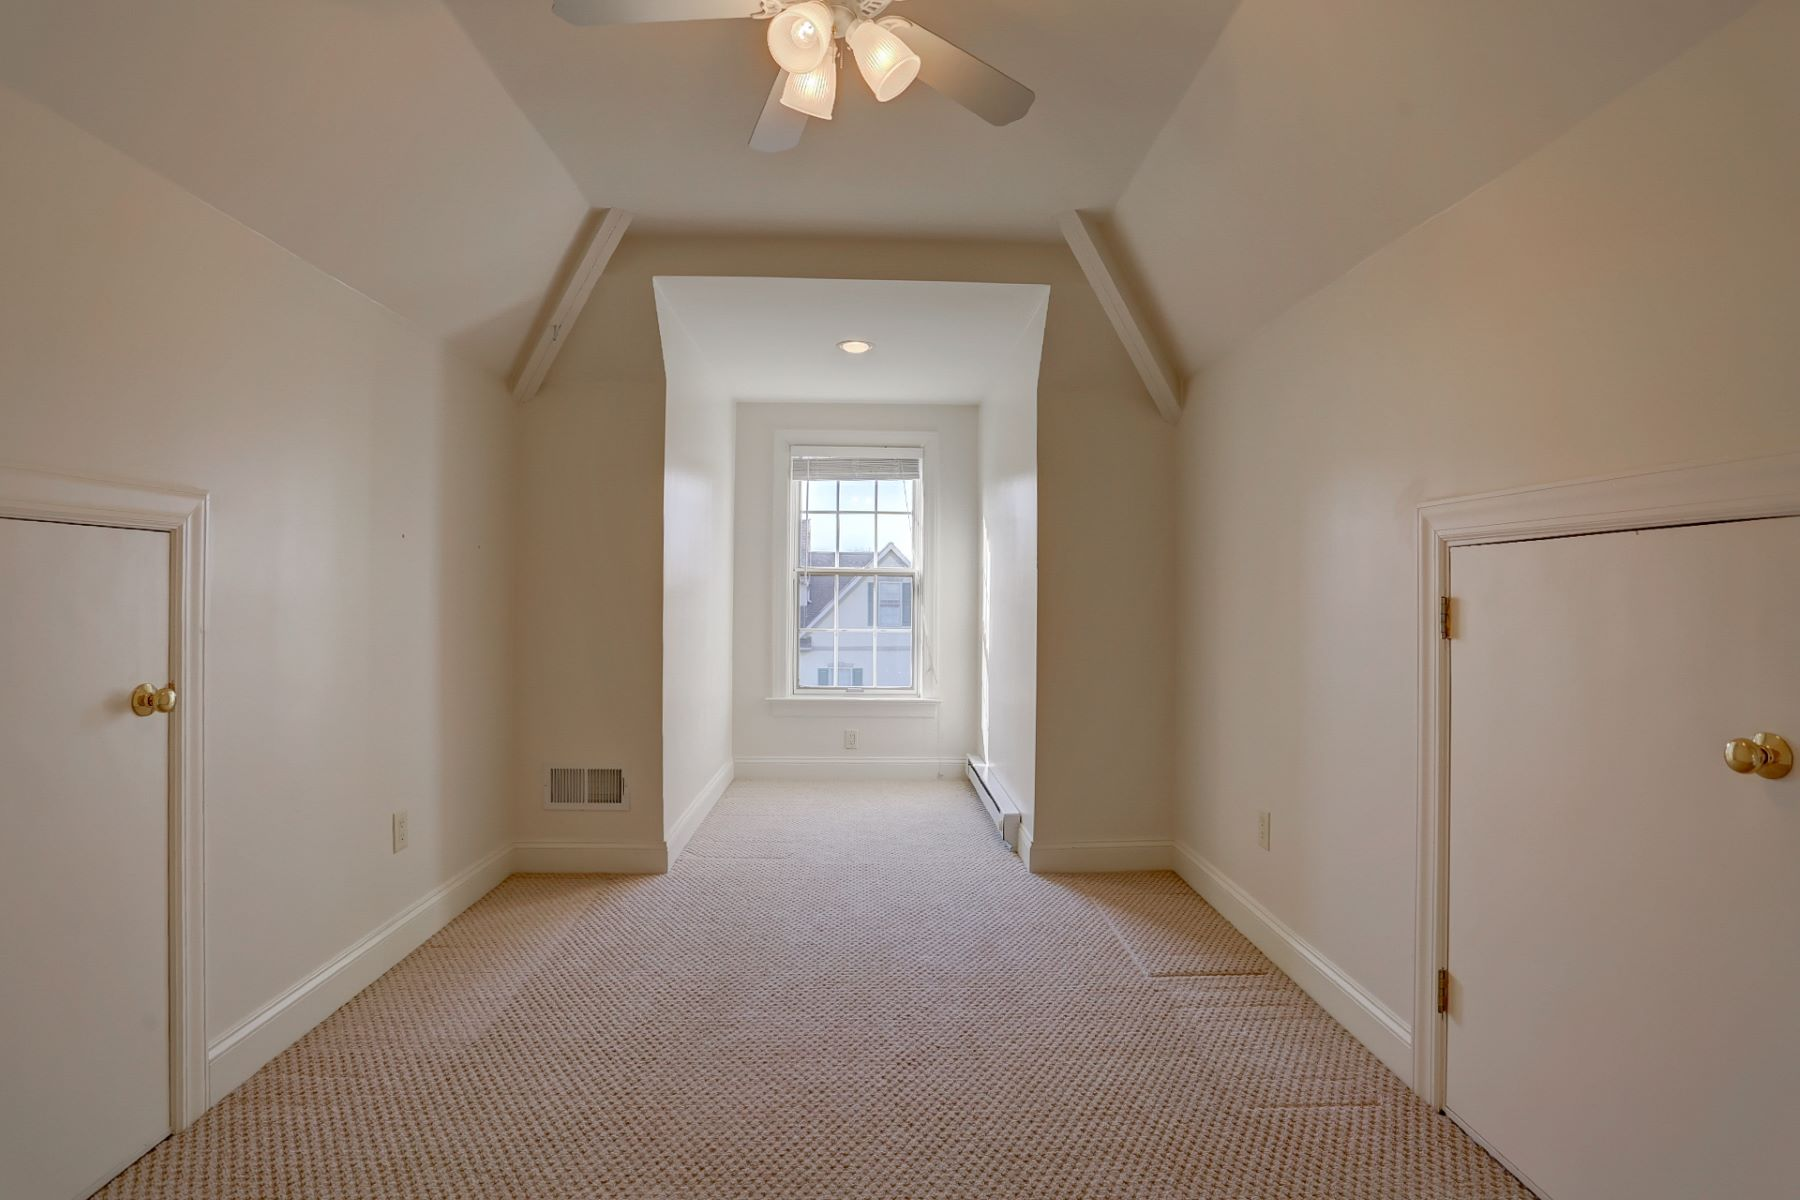 Additional photo for property listing at 805 Woodfield Drive  Lititz, Pennsylvania 17543 Estados Unidos